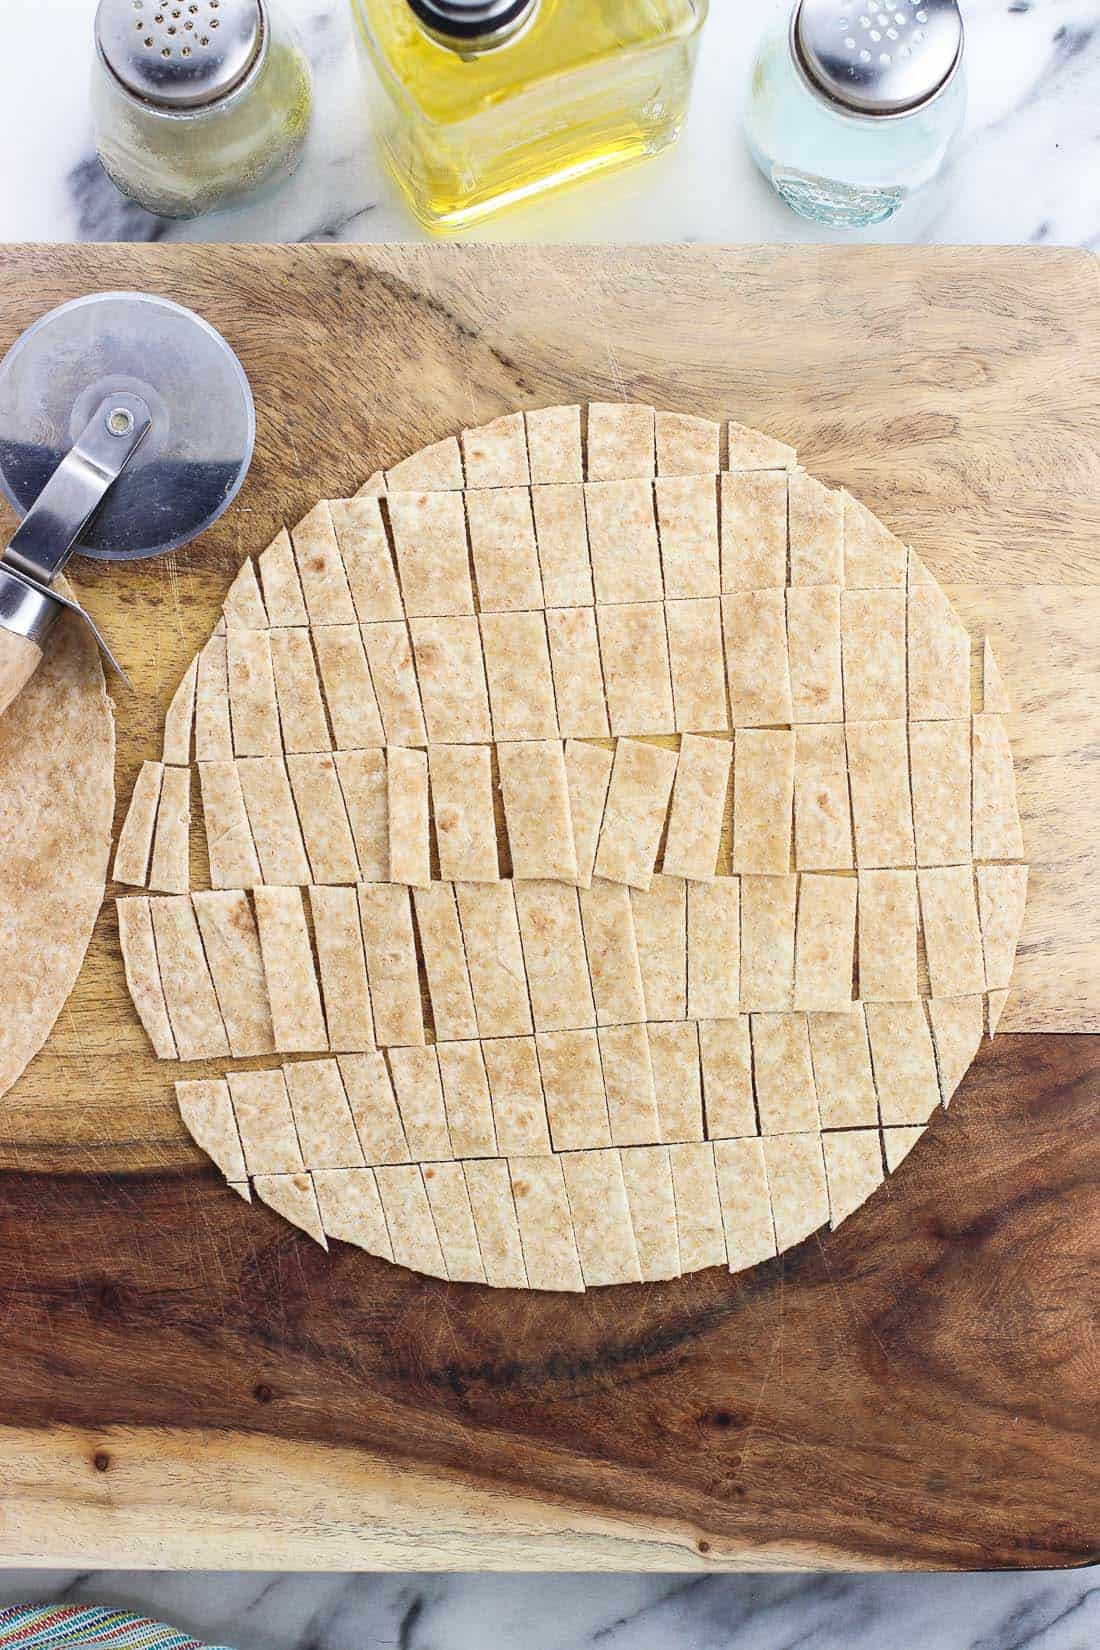 Learn how to make tortilla strips in the oven with this simple method. They crisp up SO well while being oven-baked, and can be seasoned just how you like them for topping salads, soups, chilis, and more. I like to use whole wheat tortillas for a healthier option!